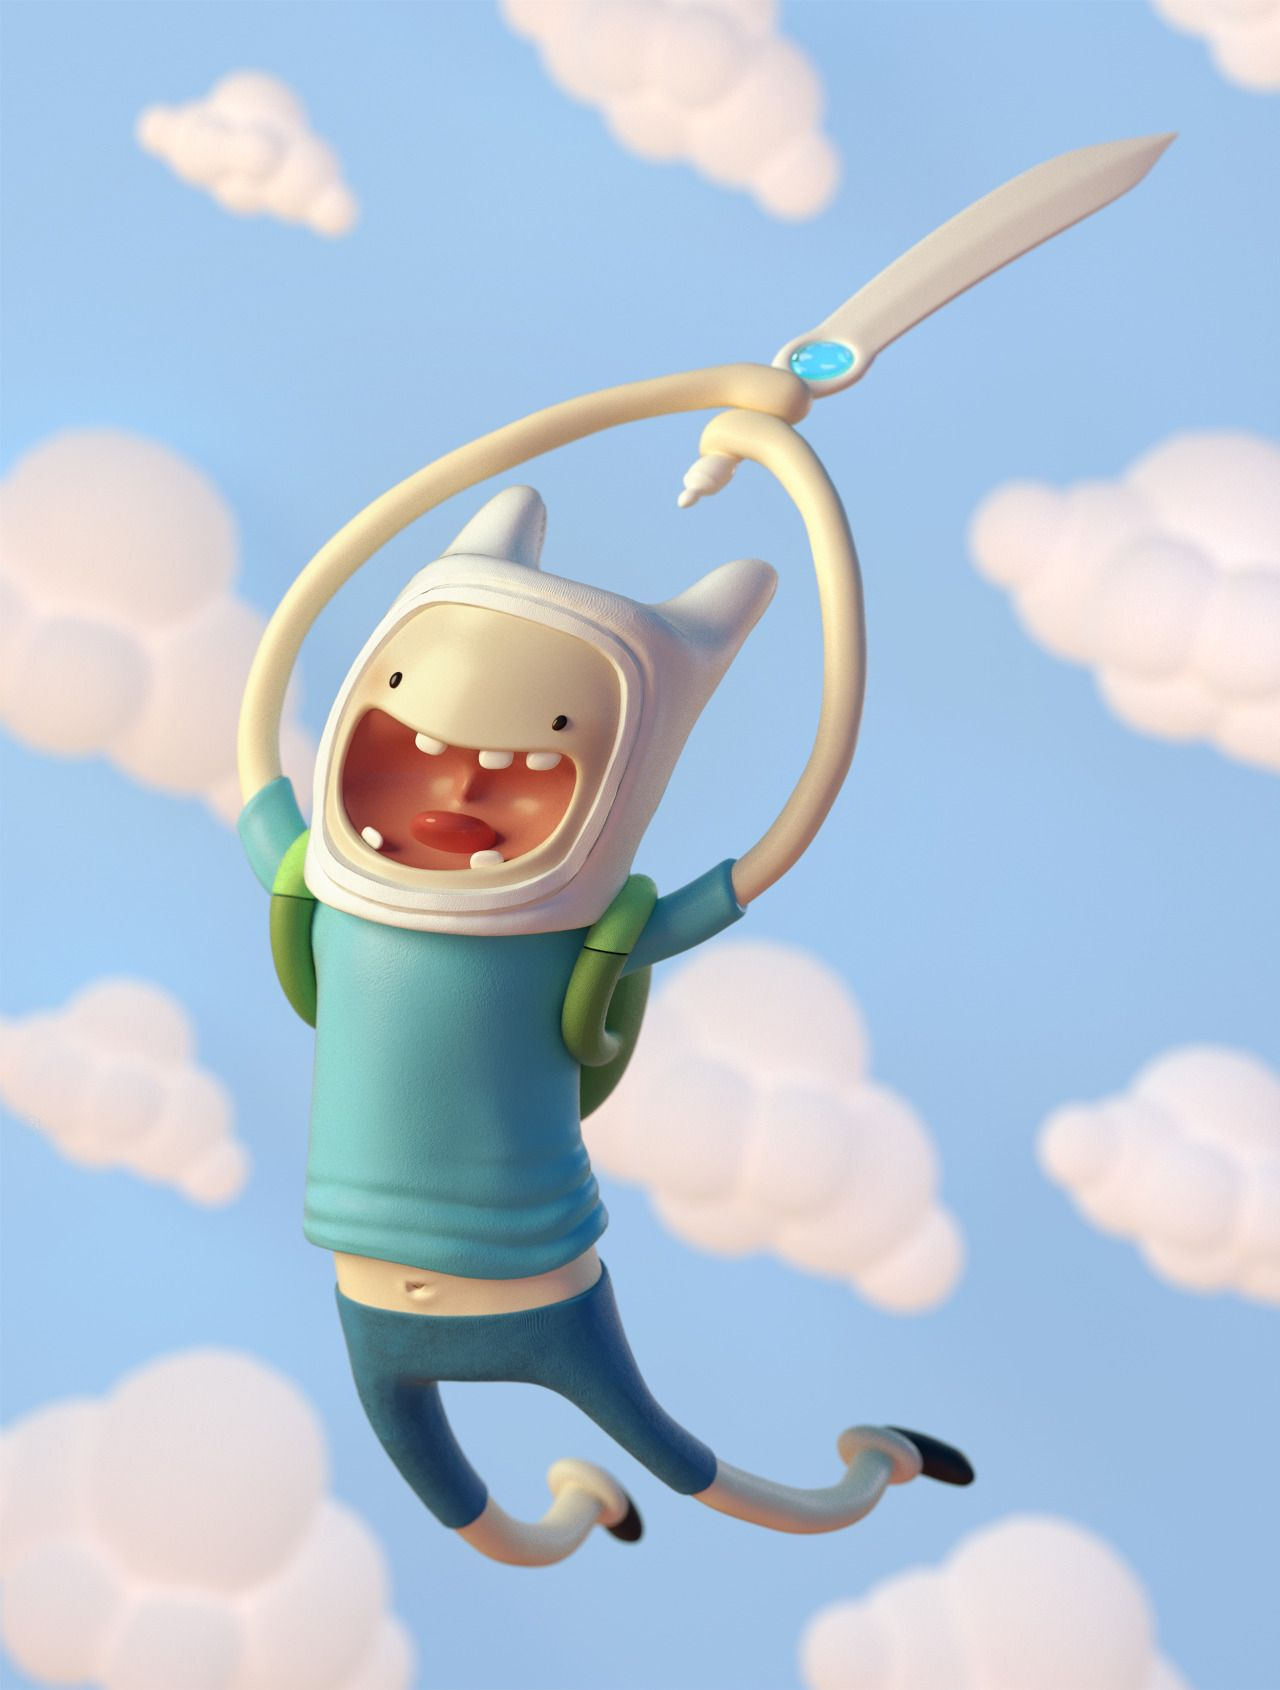 Adventure time forever jeremy edelblut adventure time